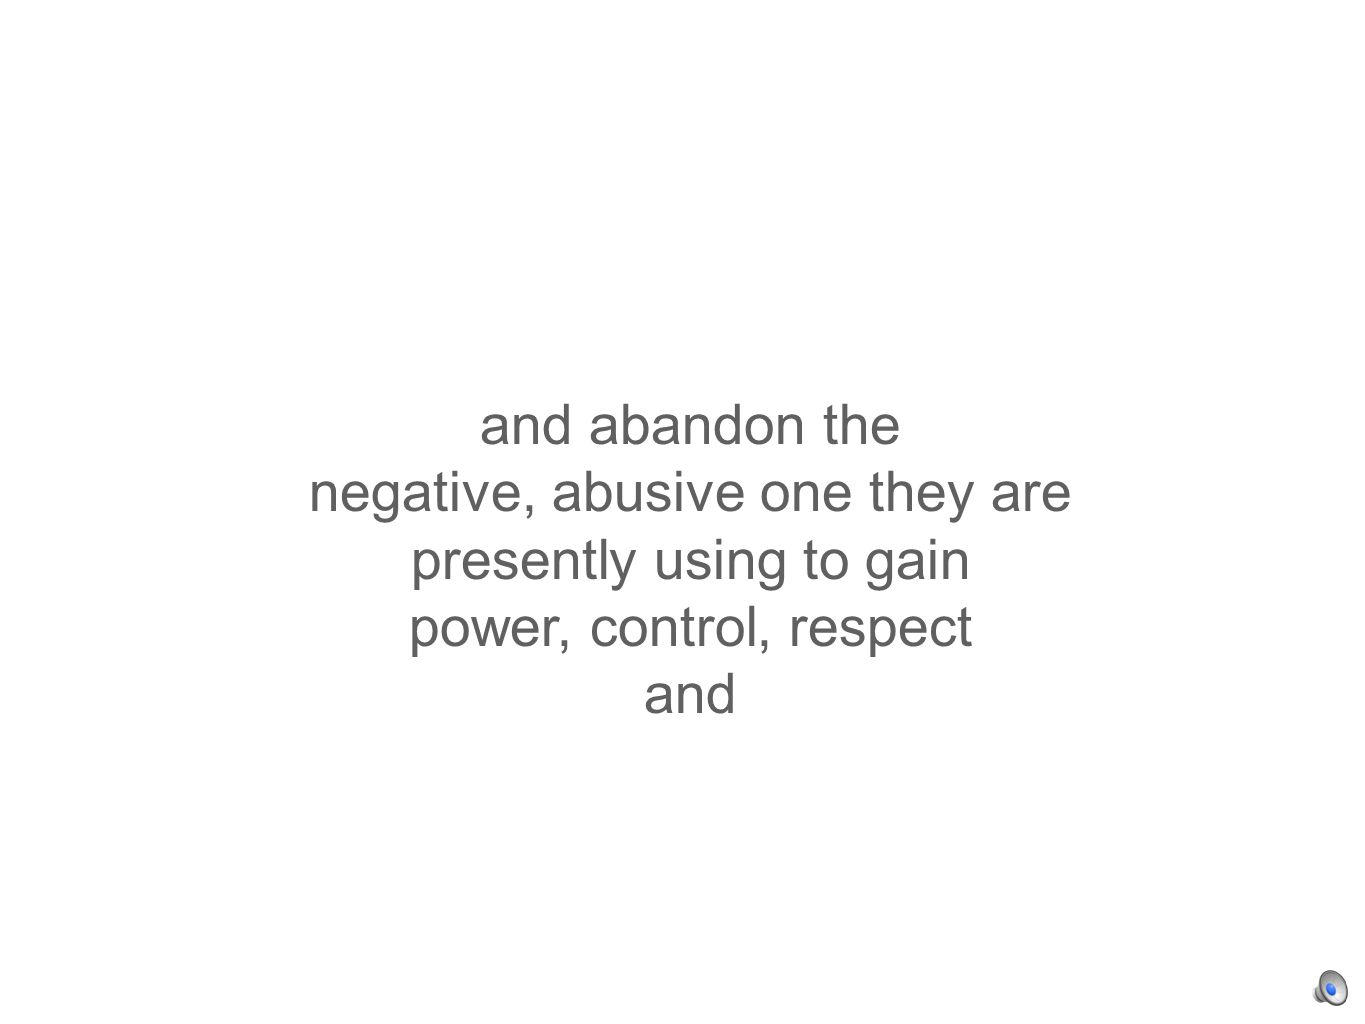 and abandon the negative, abusive one they are presently using to gain power, control, respect and